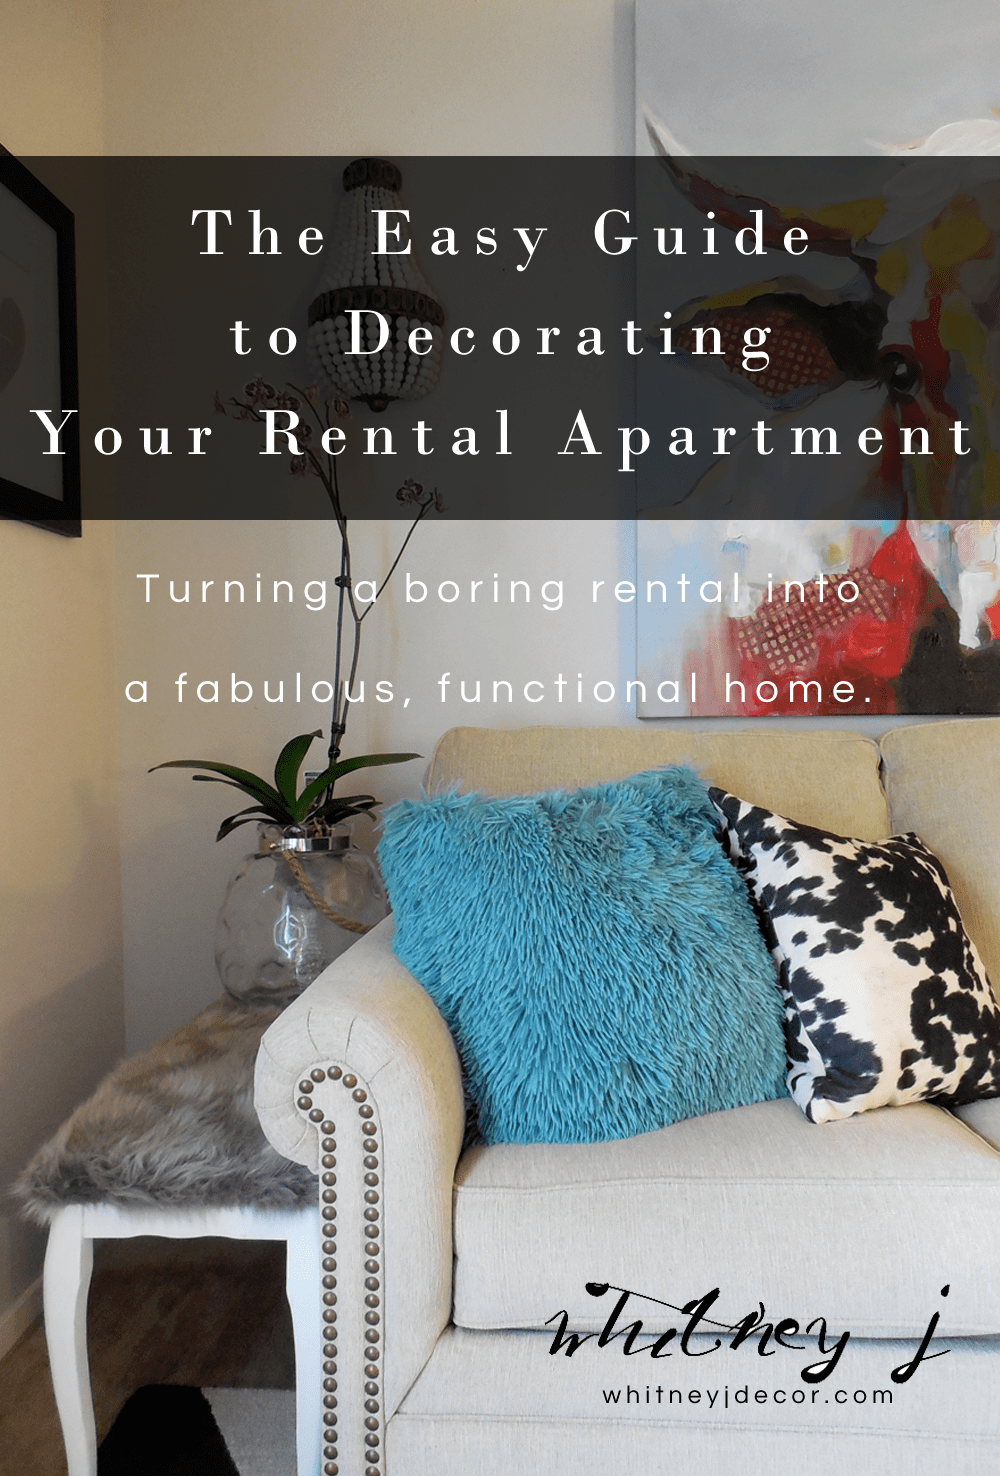 Interesting Apartment Decorating Guide Time For An Upgrade D And Ideas